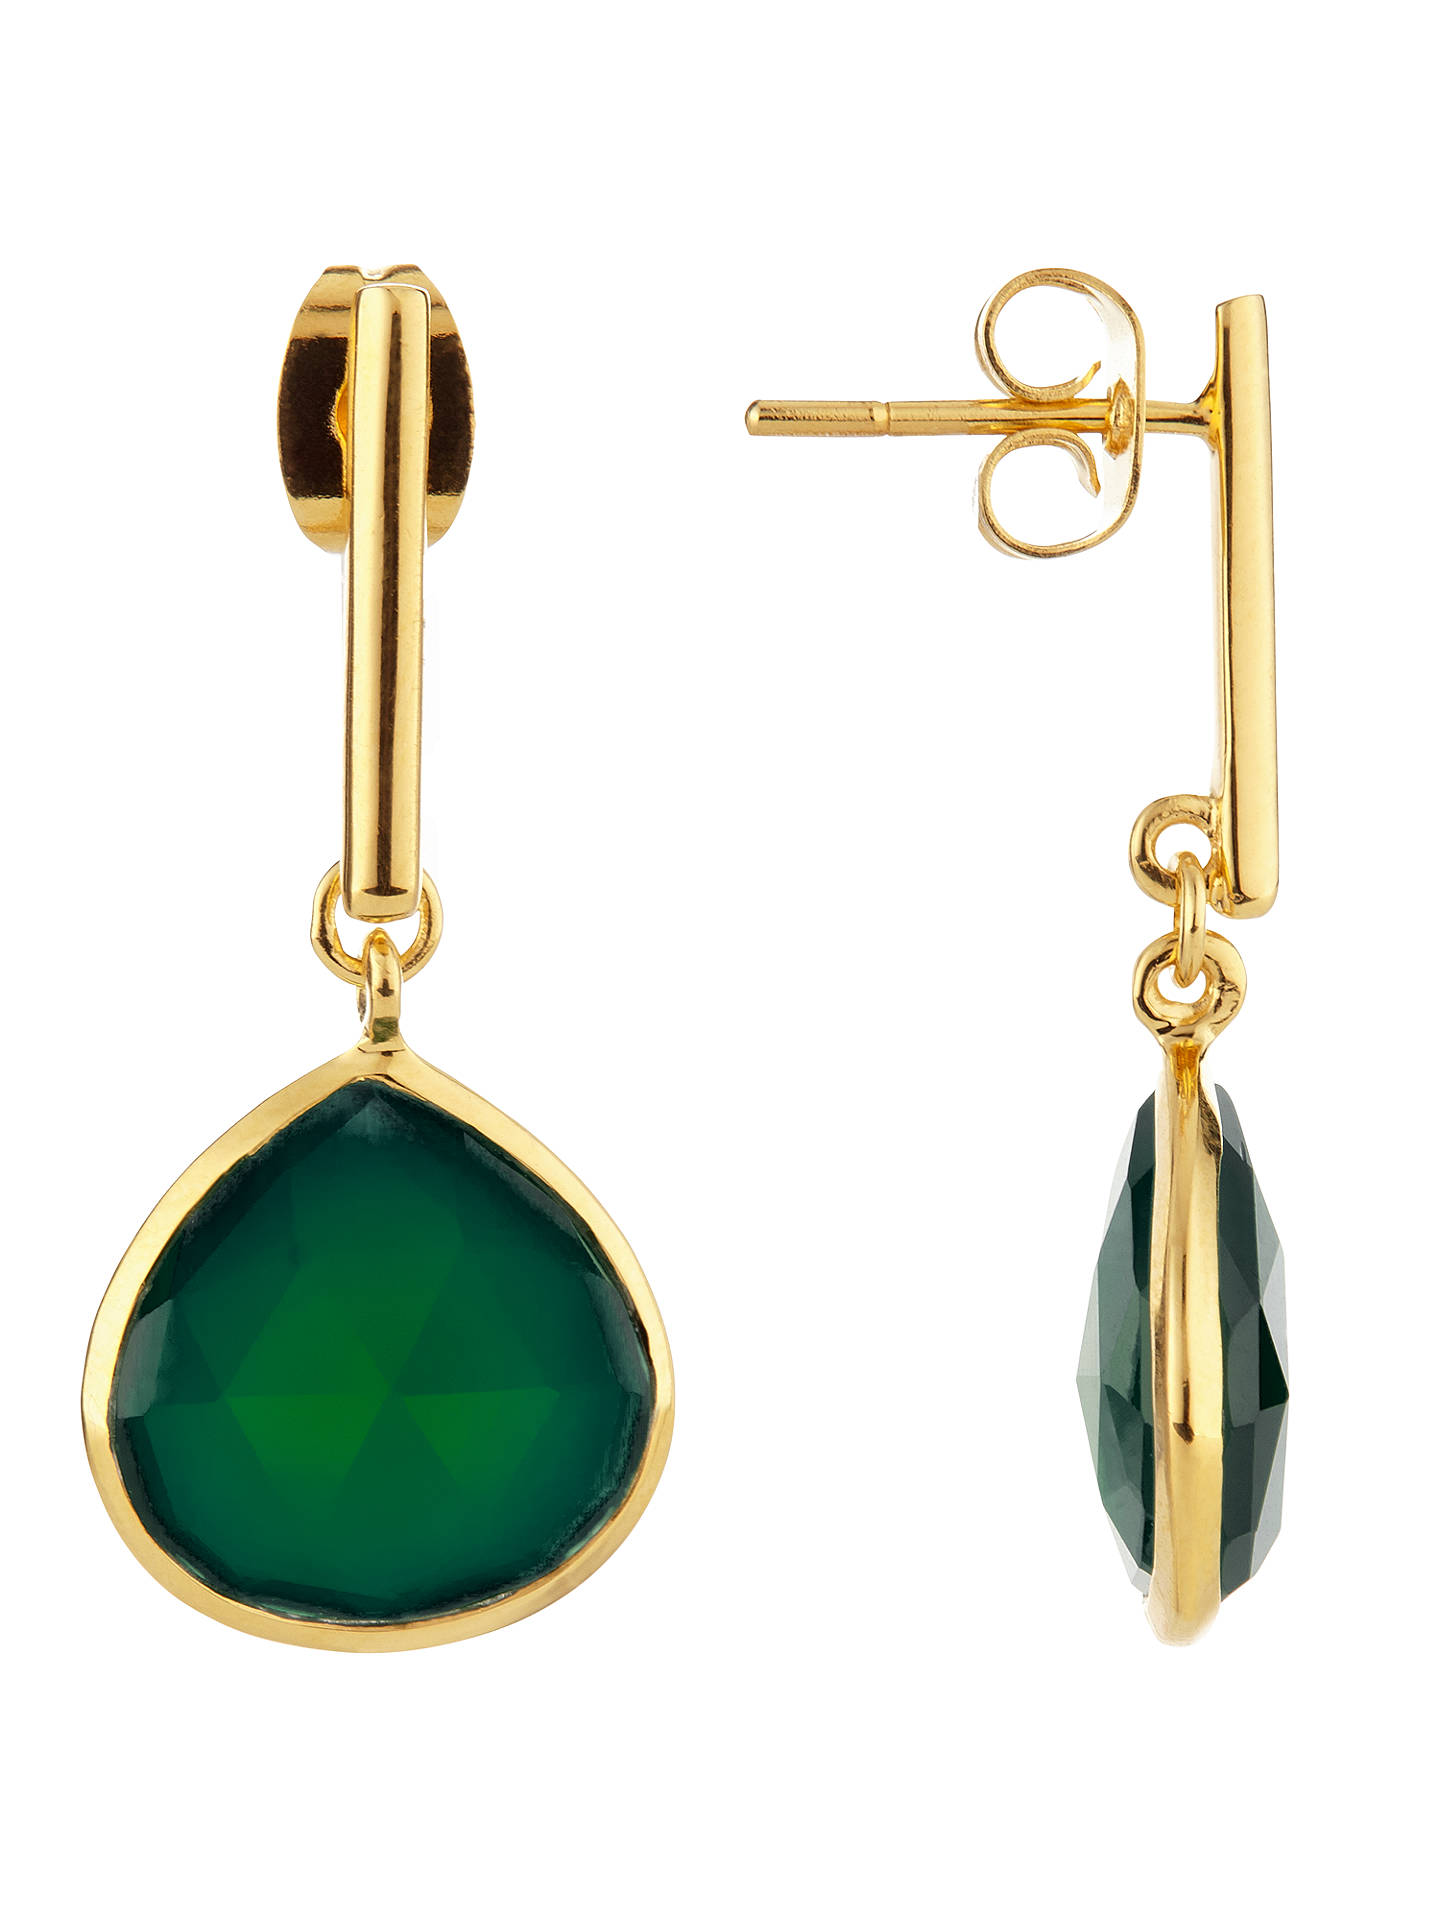 BuyJohn Lewis Semi-Precious Stone Teardrop Drop Earrings, Gold/Green Onyx Online at johnlewis.com